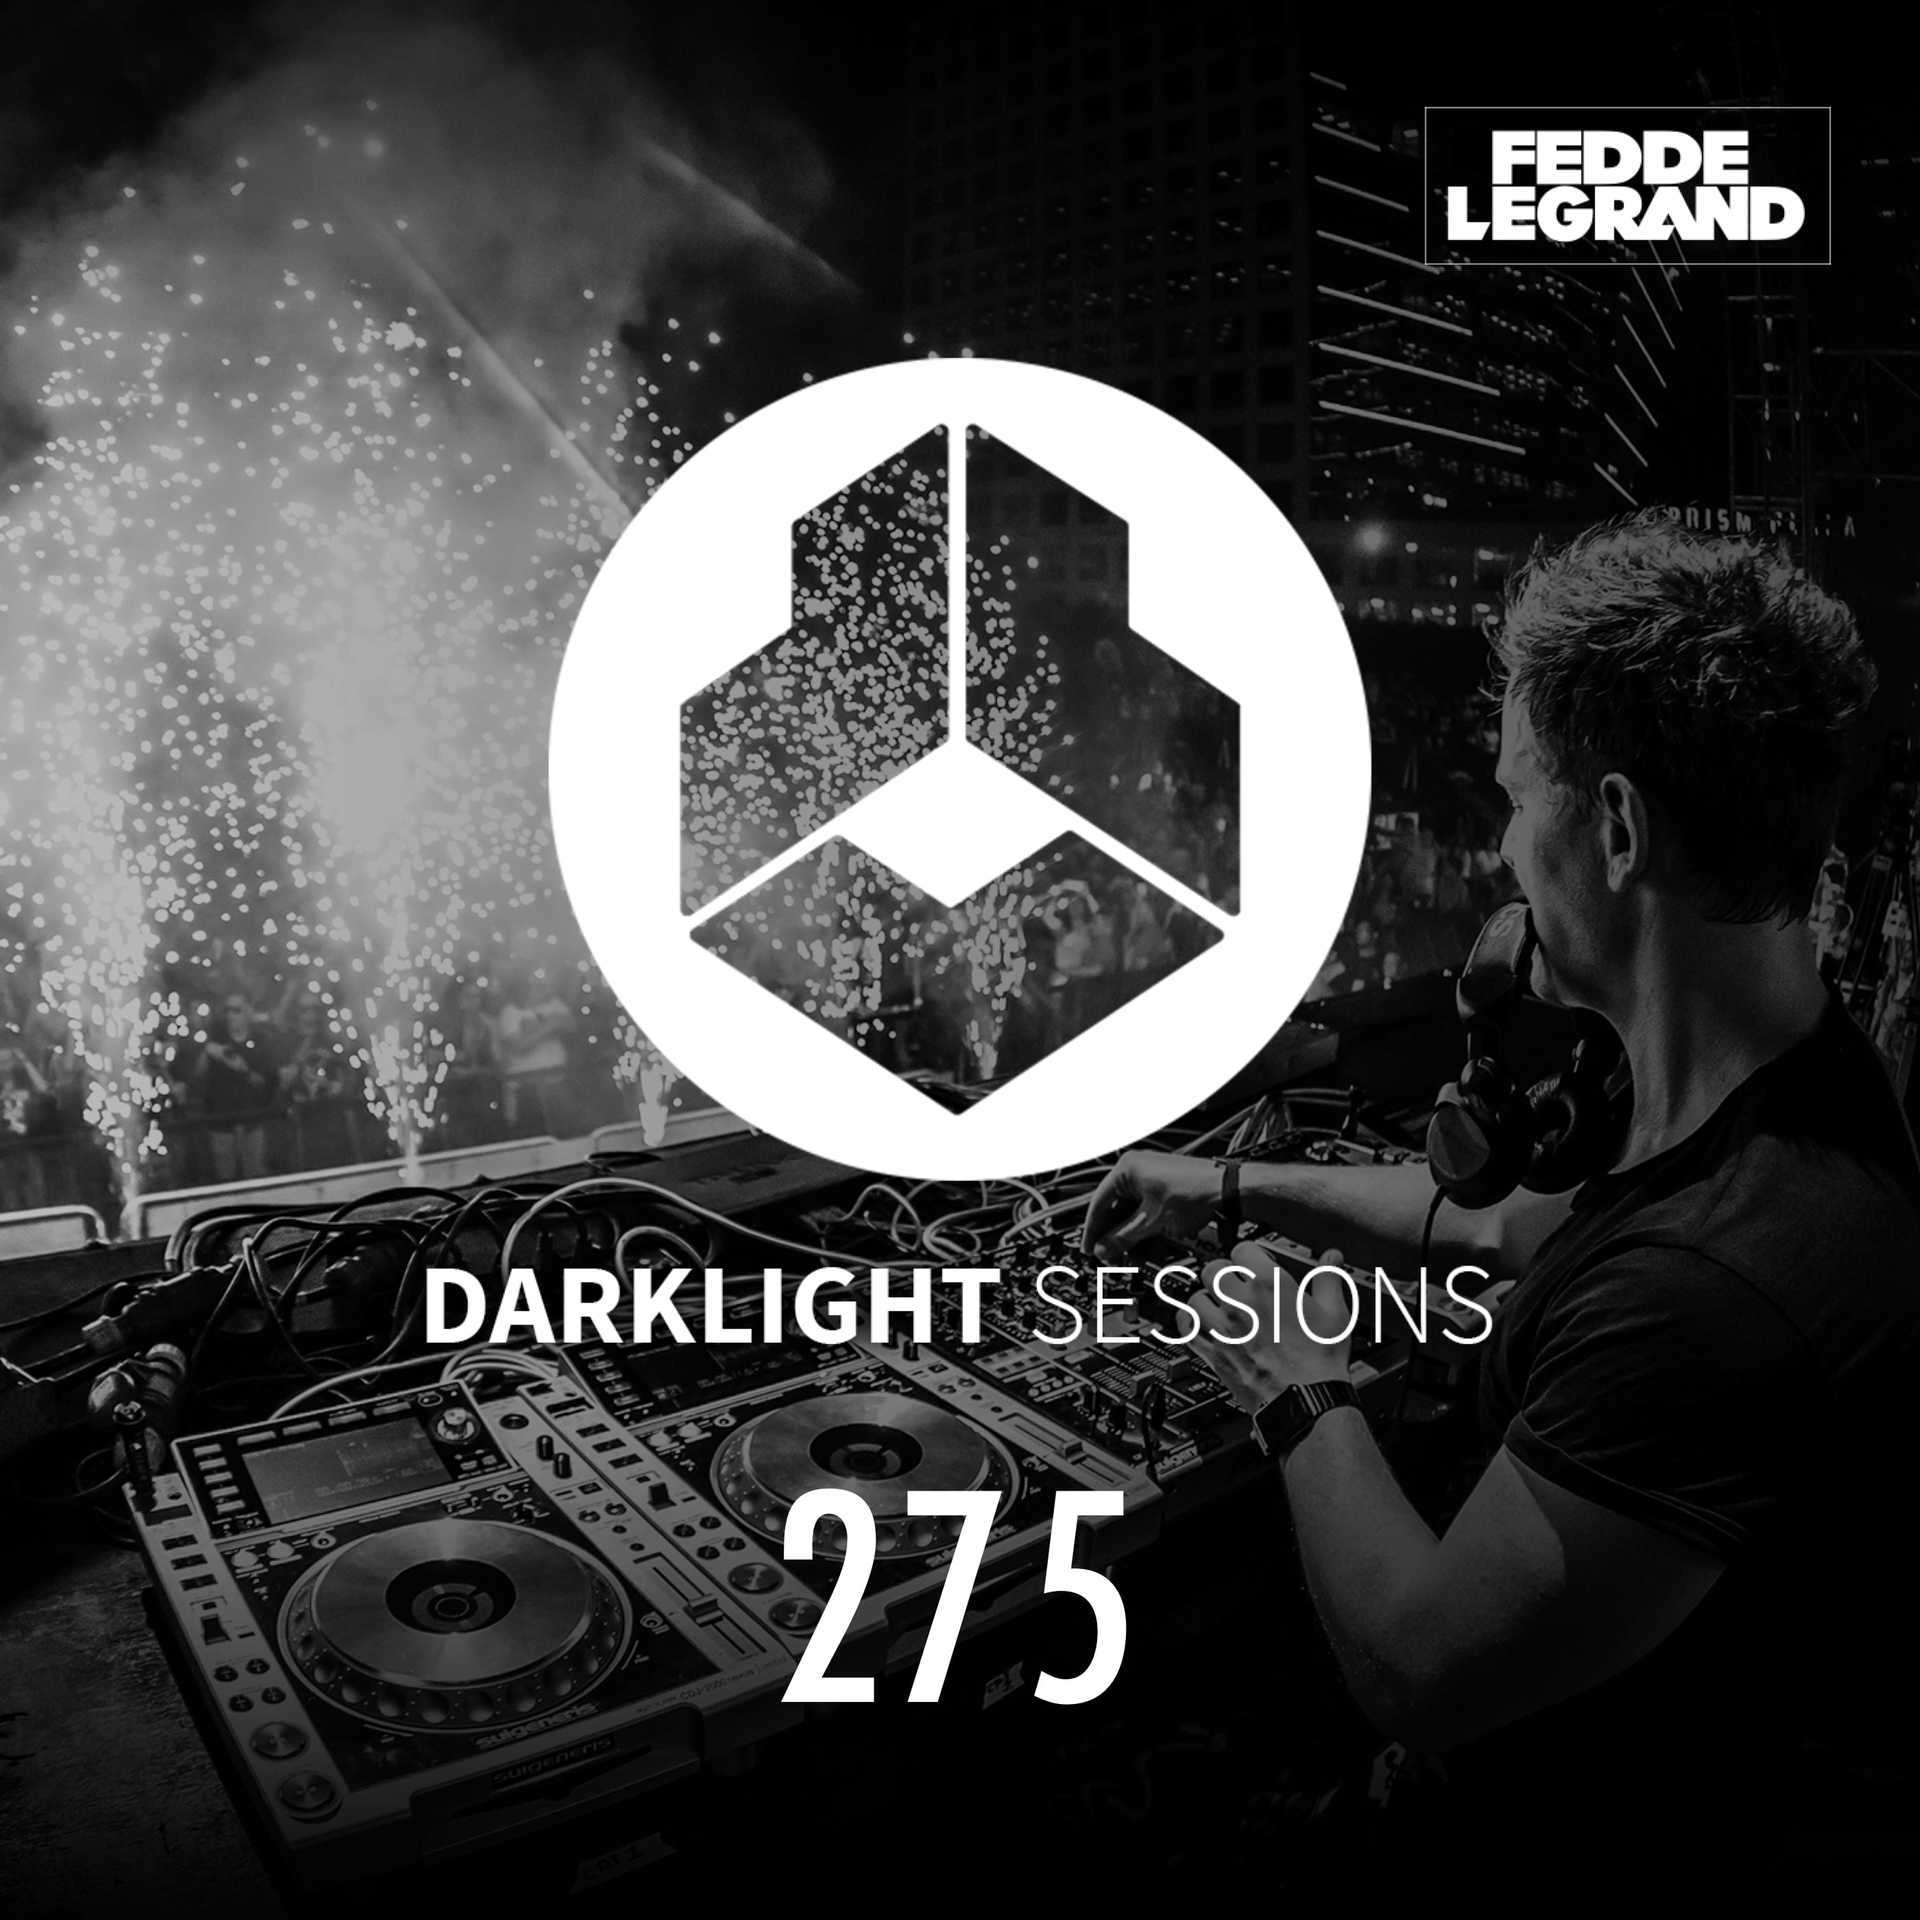 Darklight Sessions 275